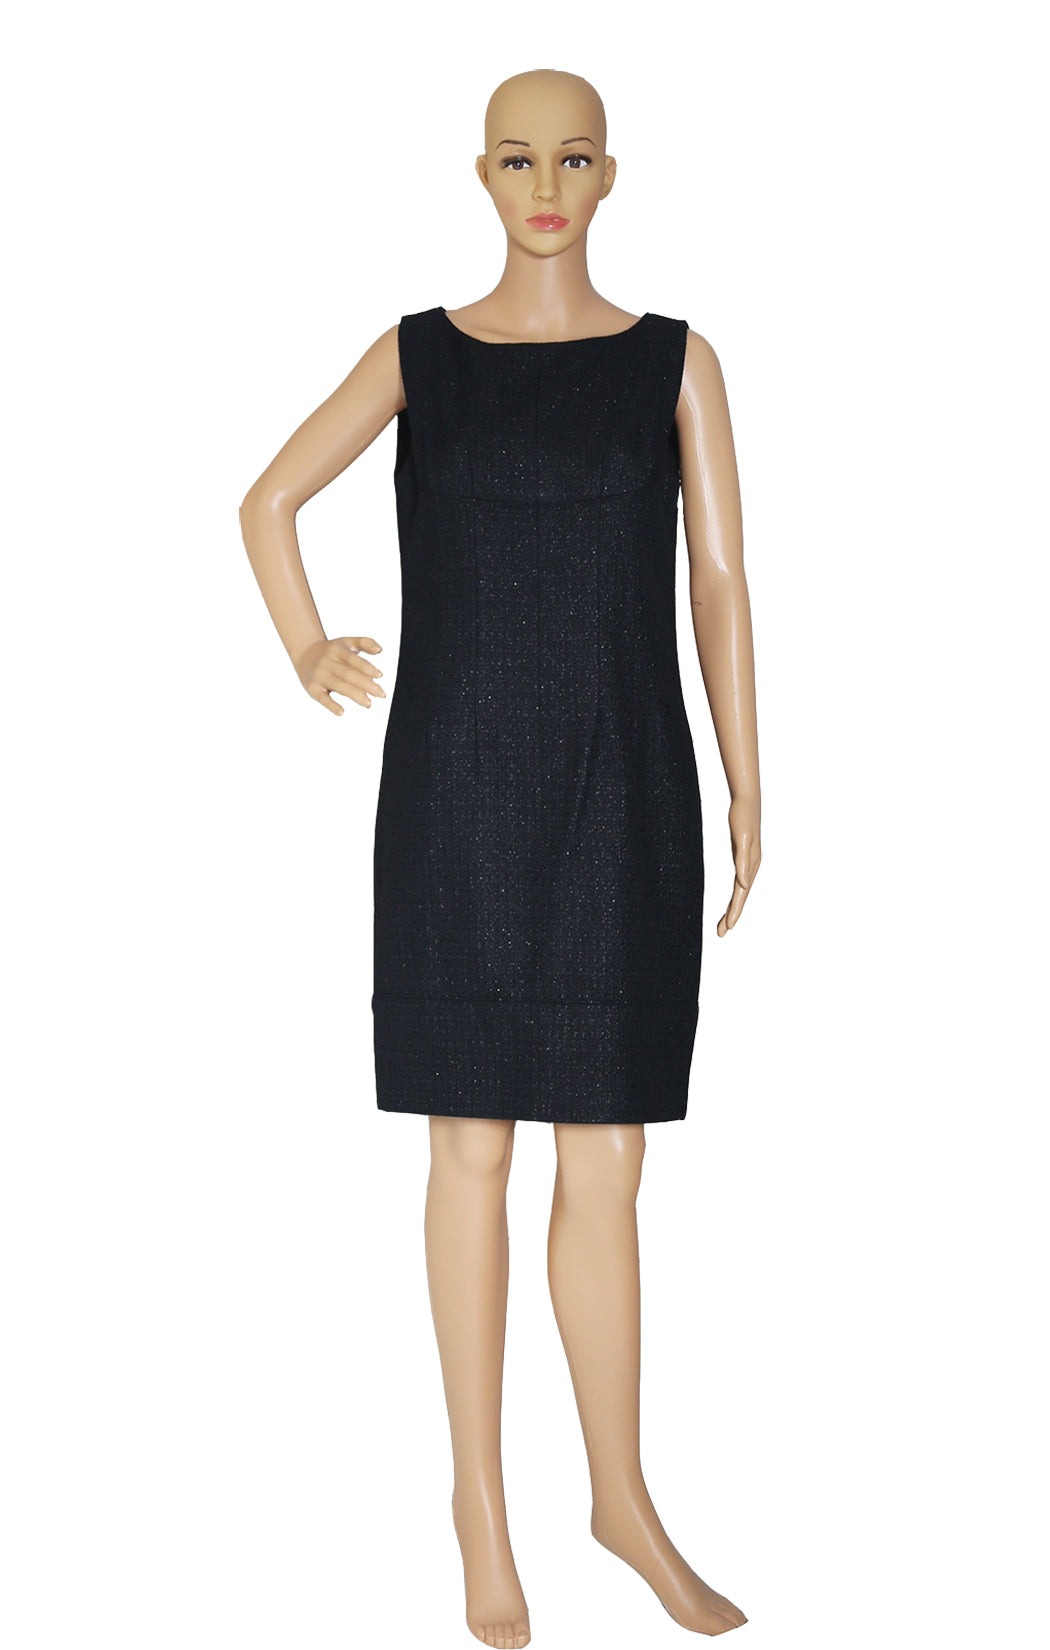 Front view of CHANEL Black Sleeveless Dress Size: FR 40 (US 8)